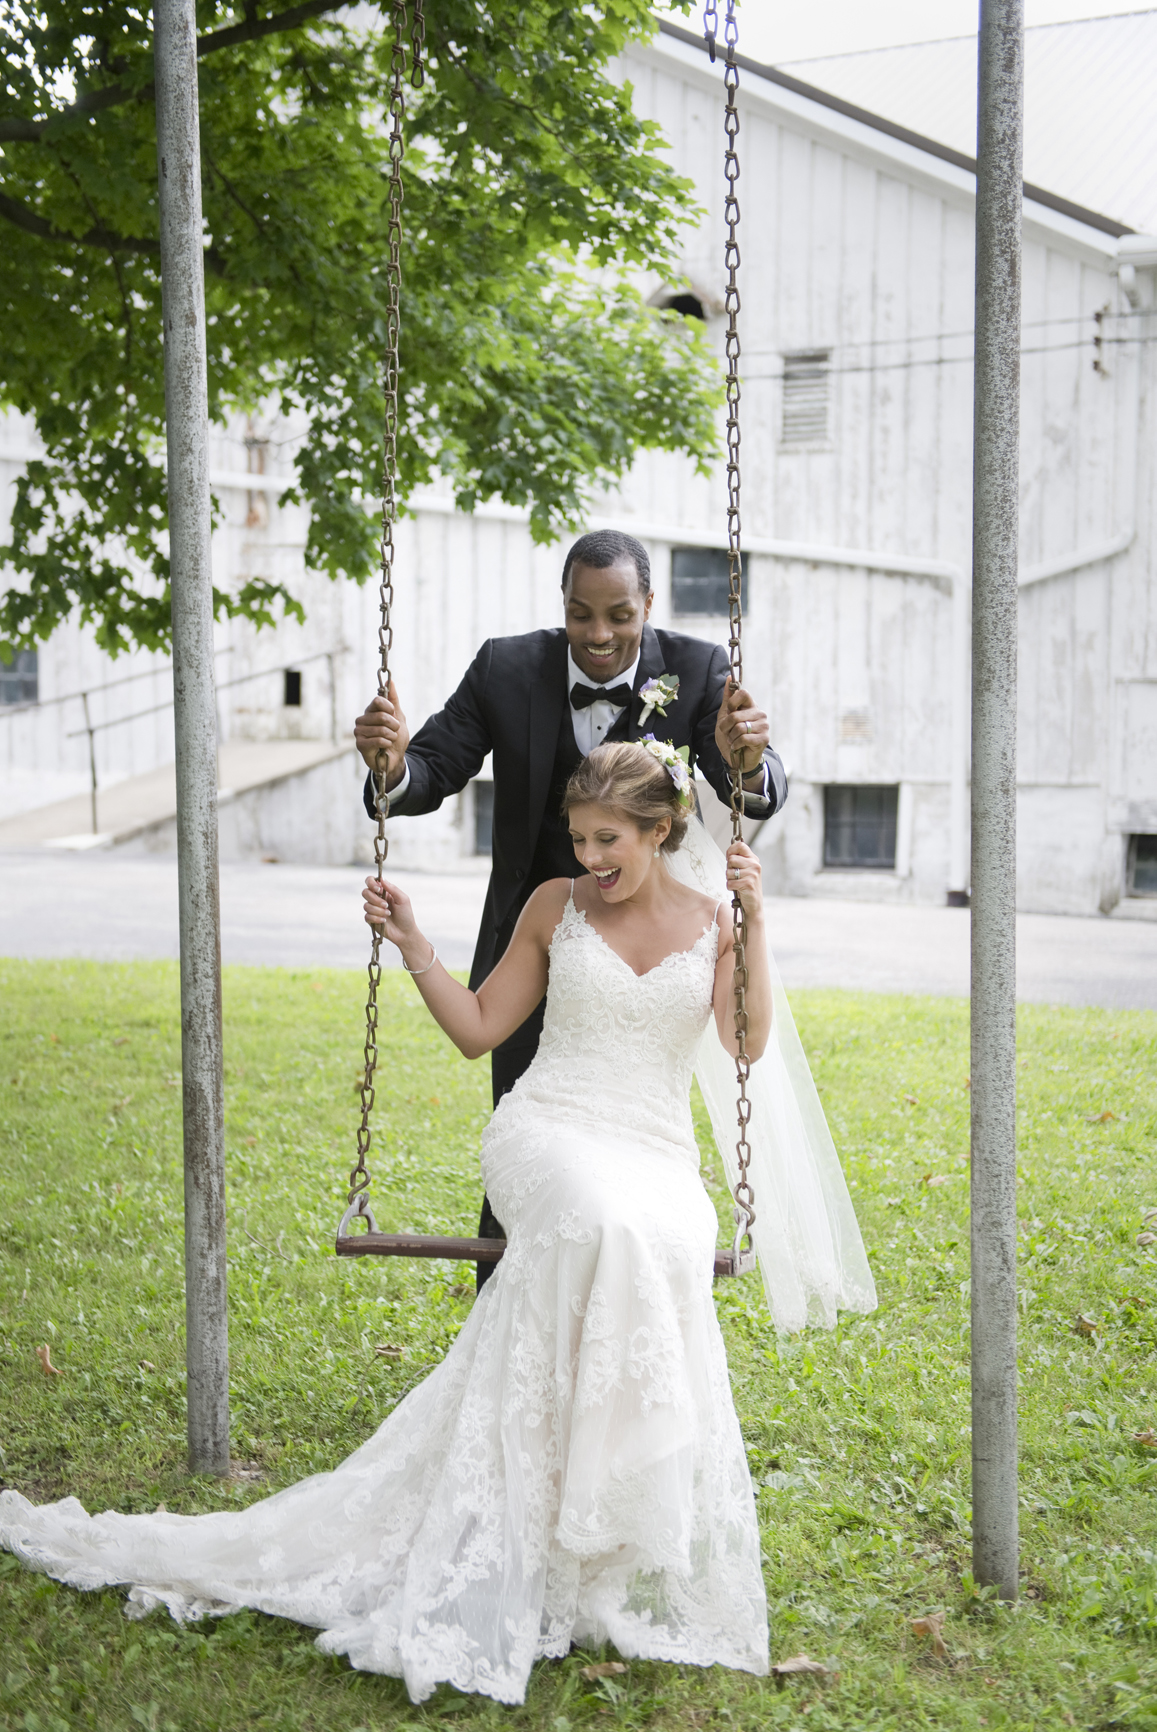 Fun bride and groom photography